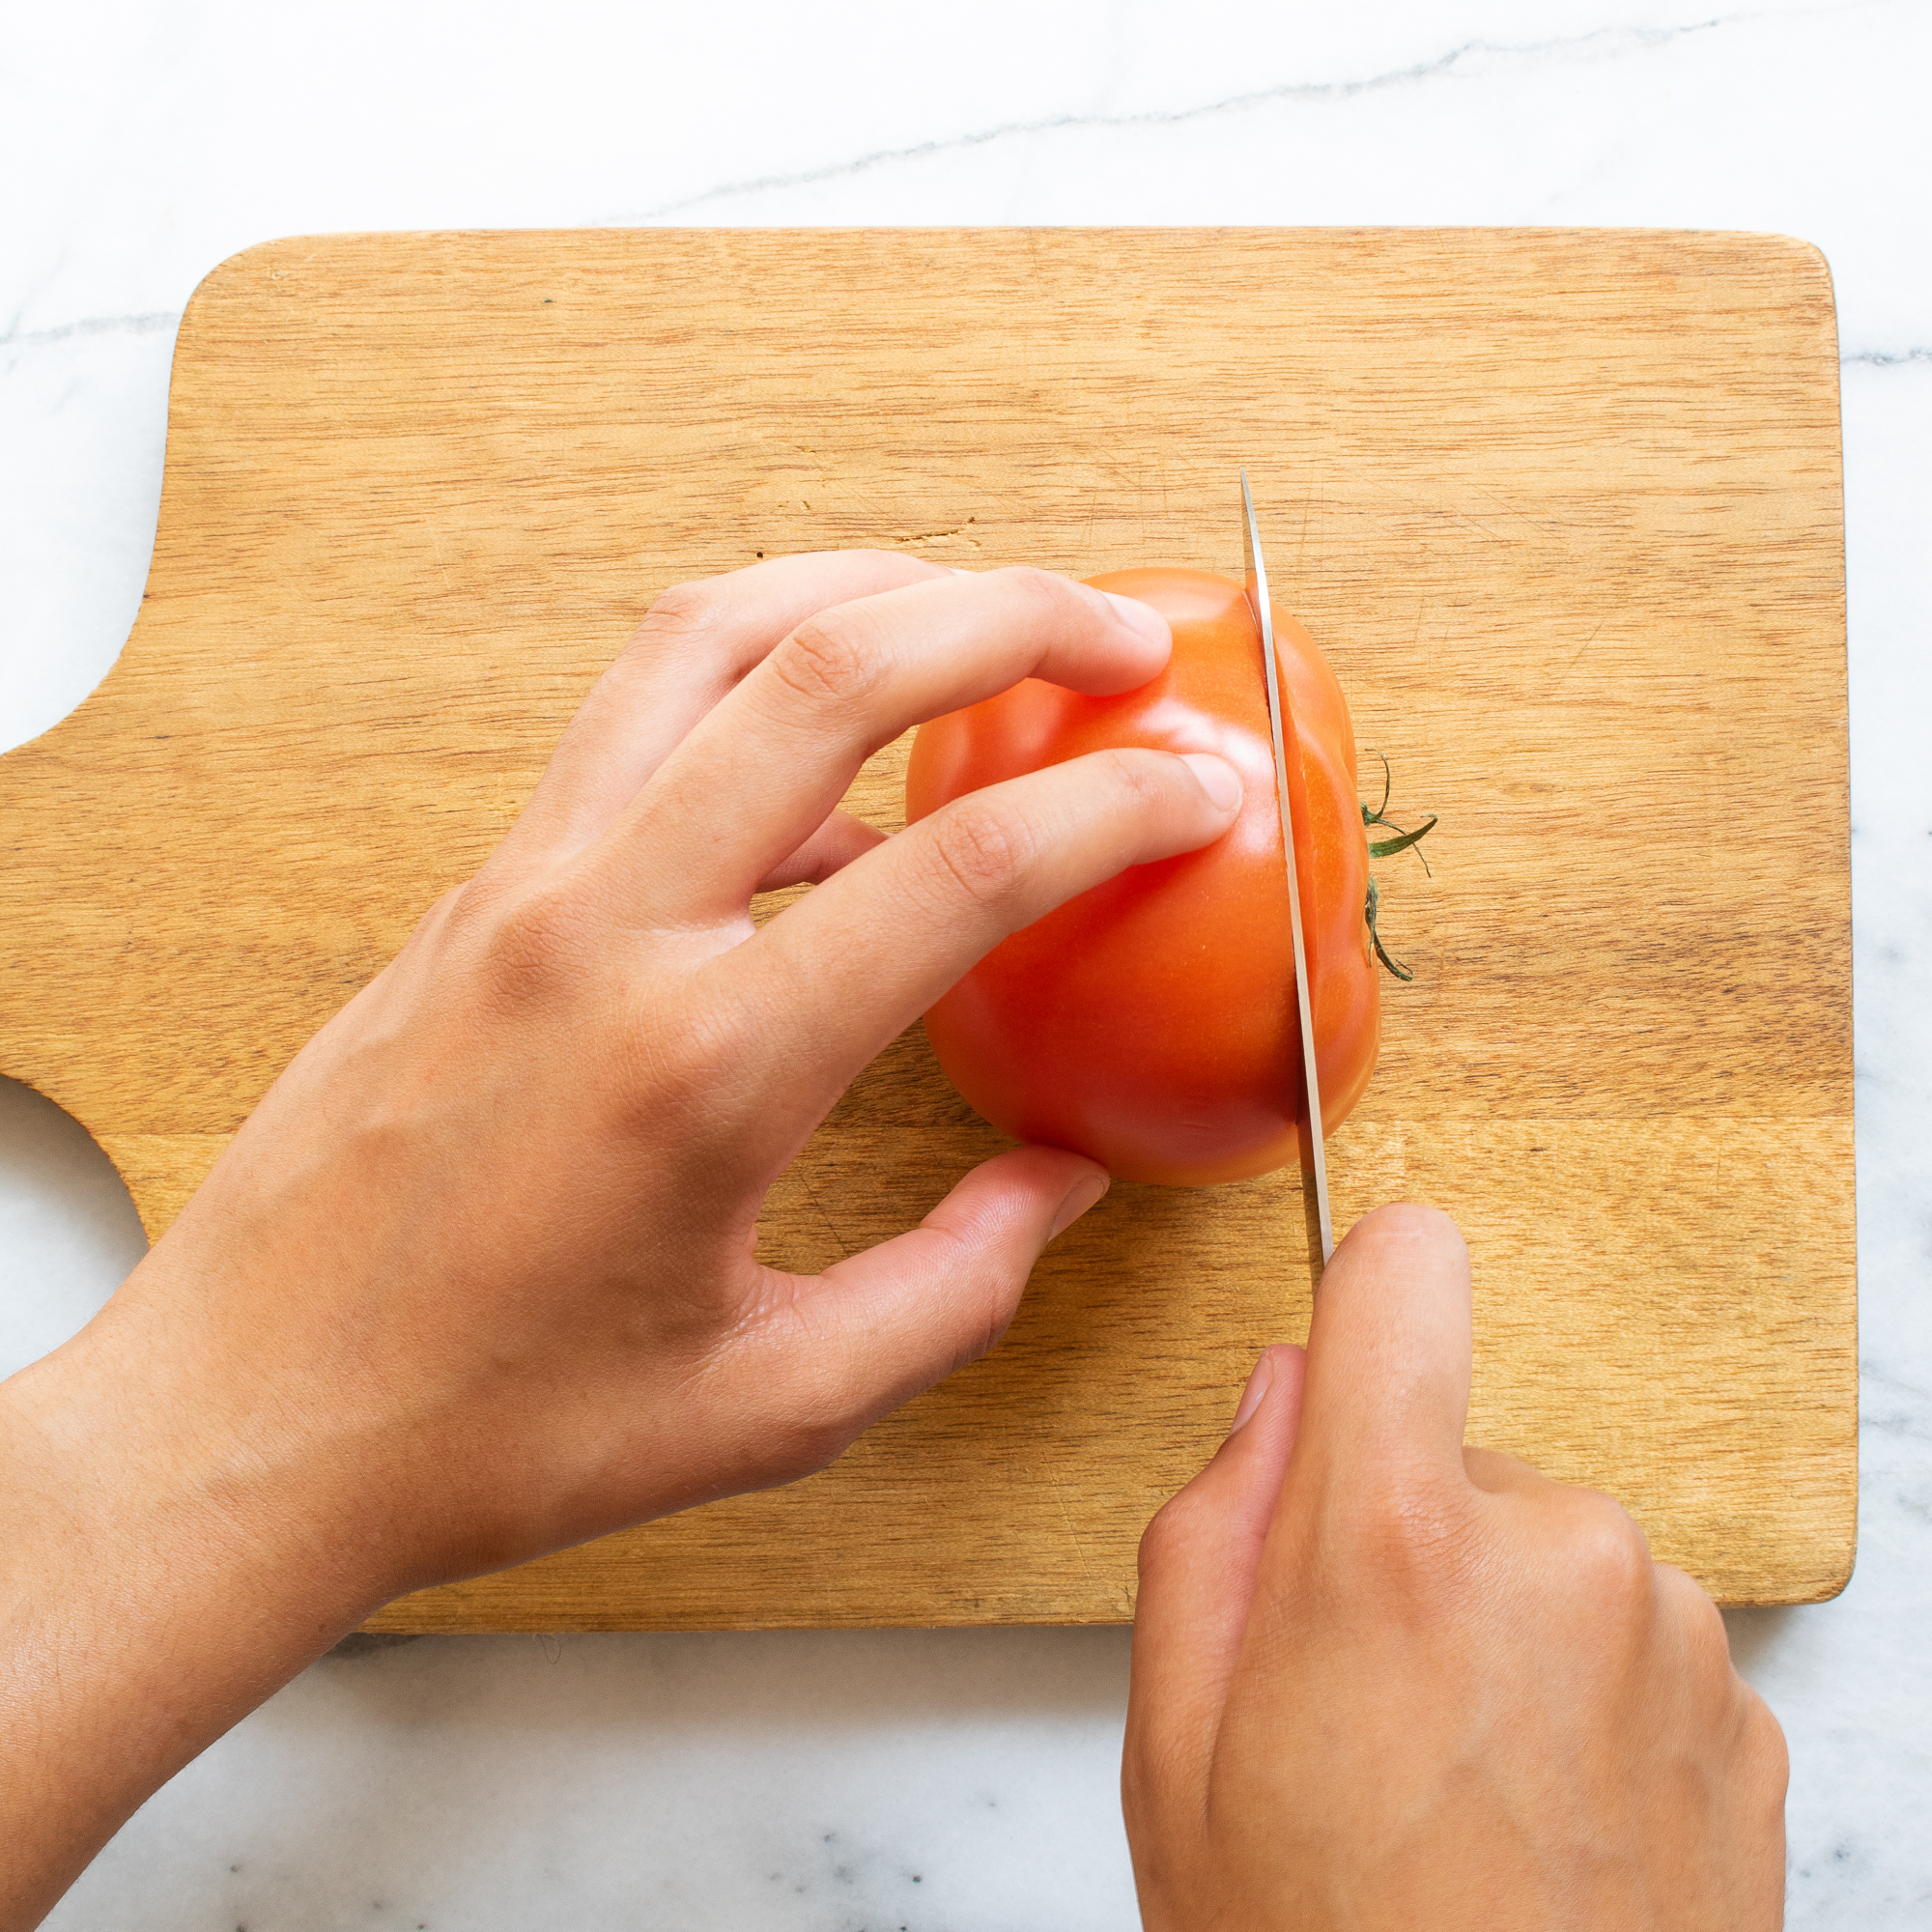 hands using a knife to slice tomatoes on a wood cutting board